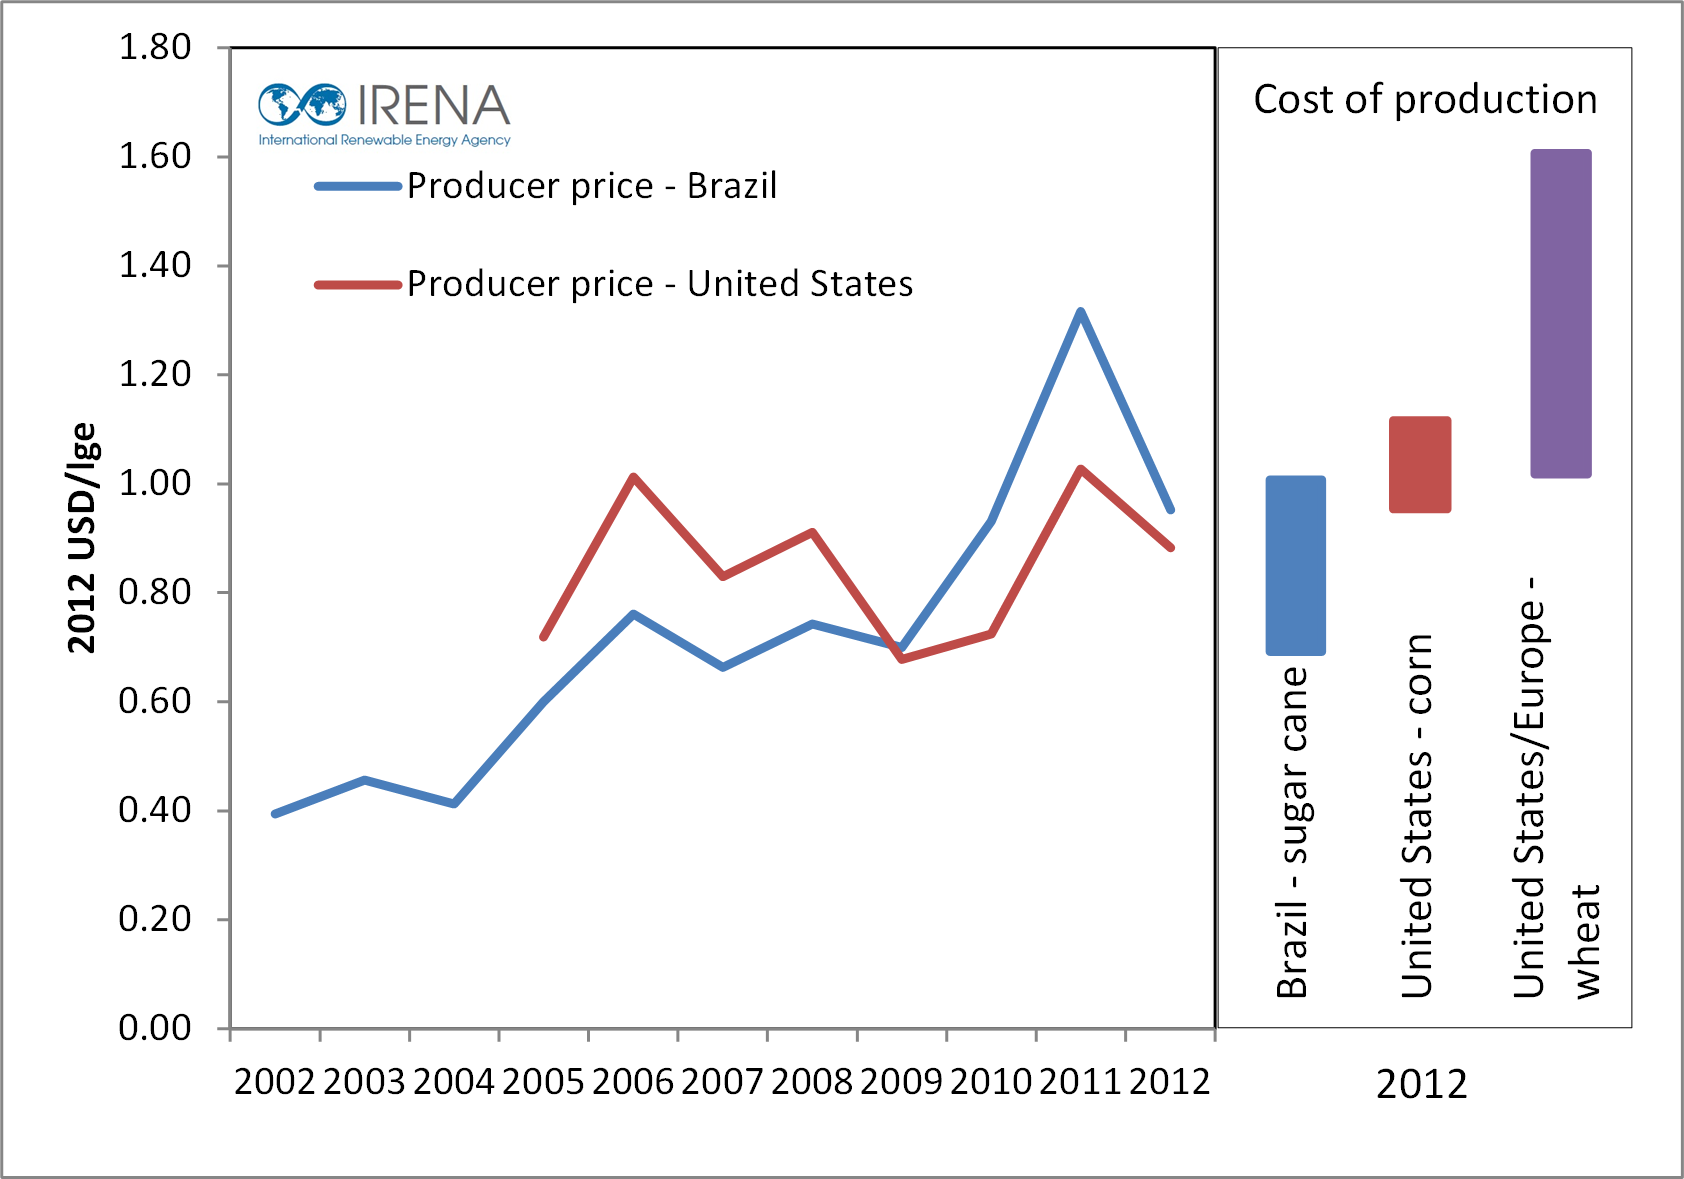 avg-producer-prices-and-estimated-cost-range-of-production-for-conventinal-ethanol-feed